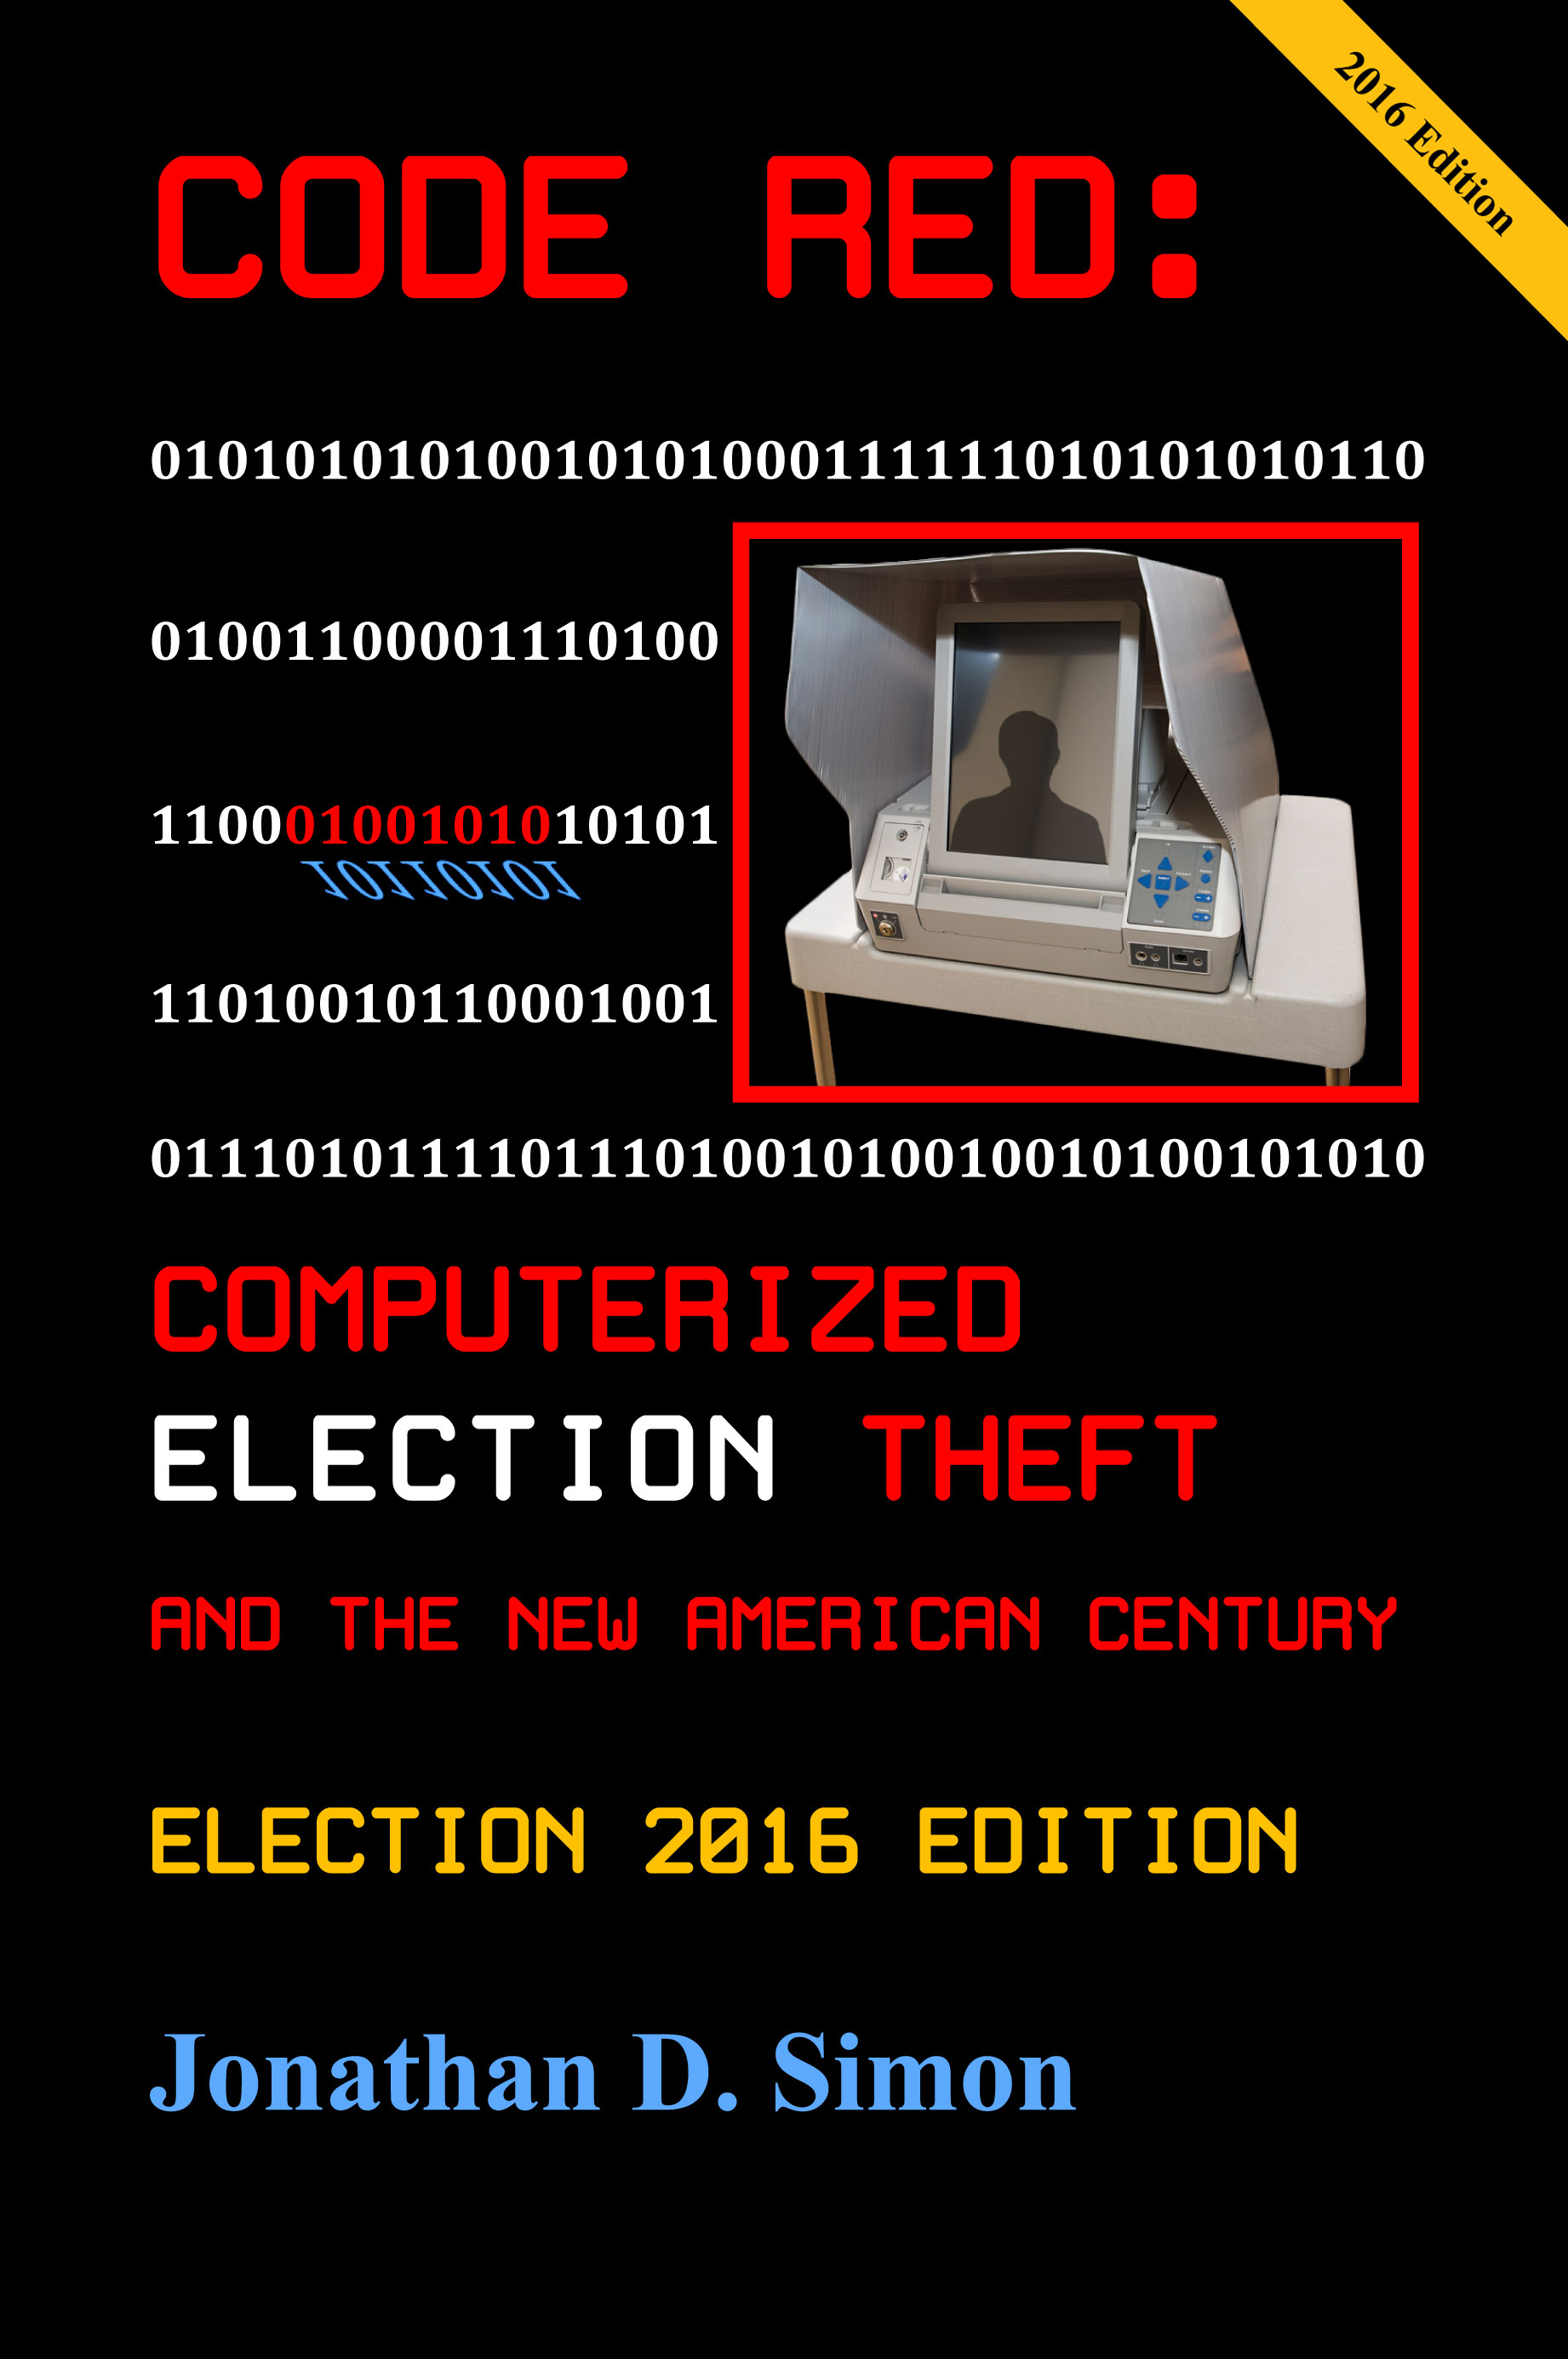 Code Red Computerized Election Fraud